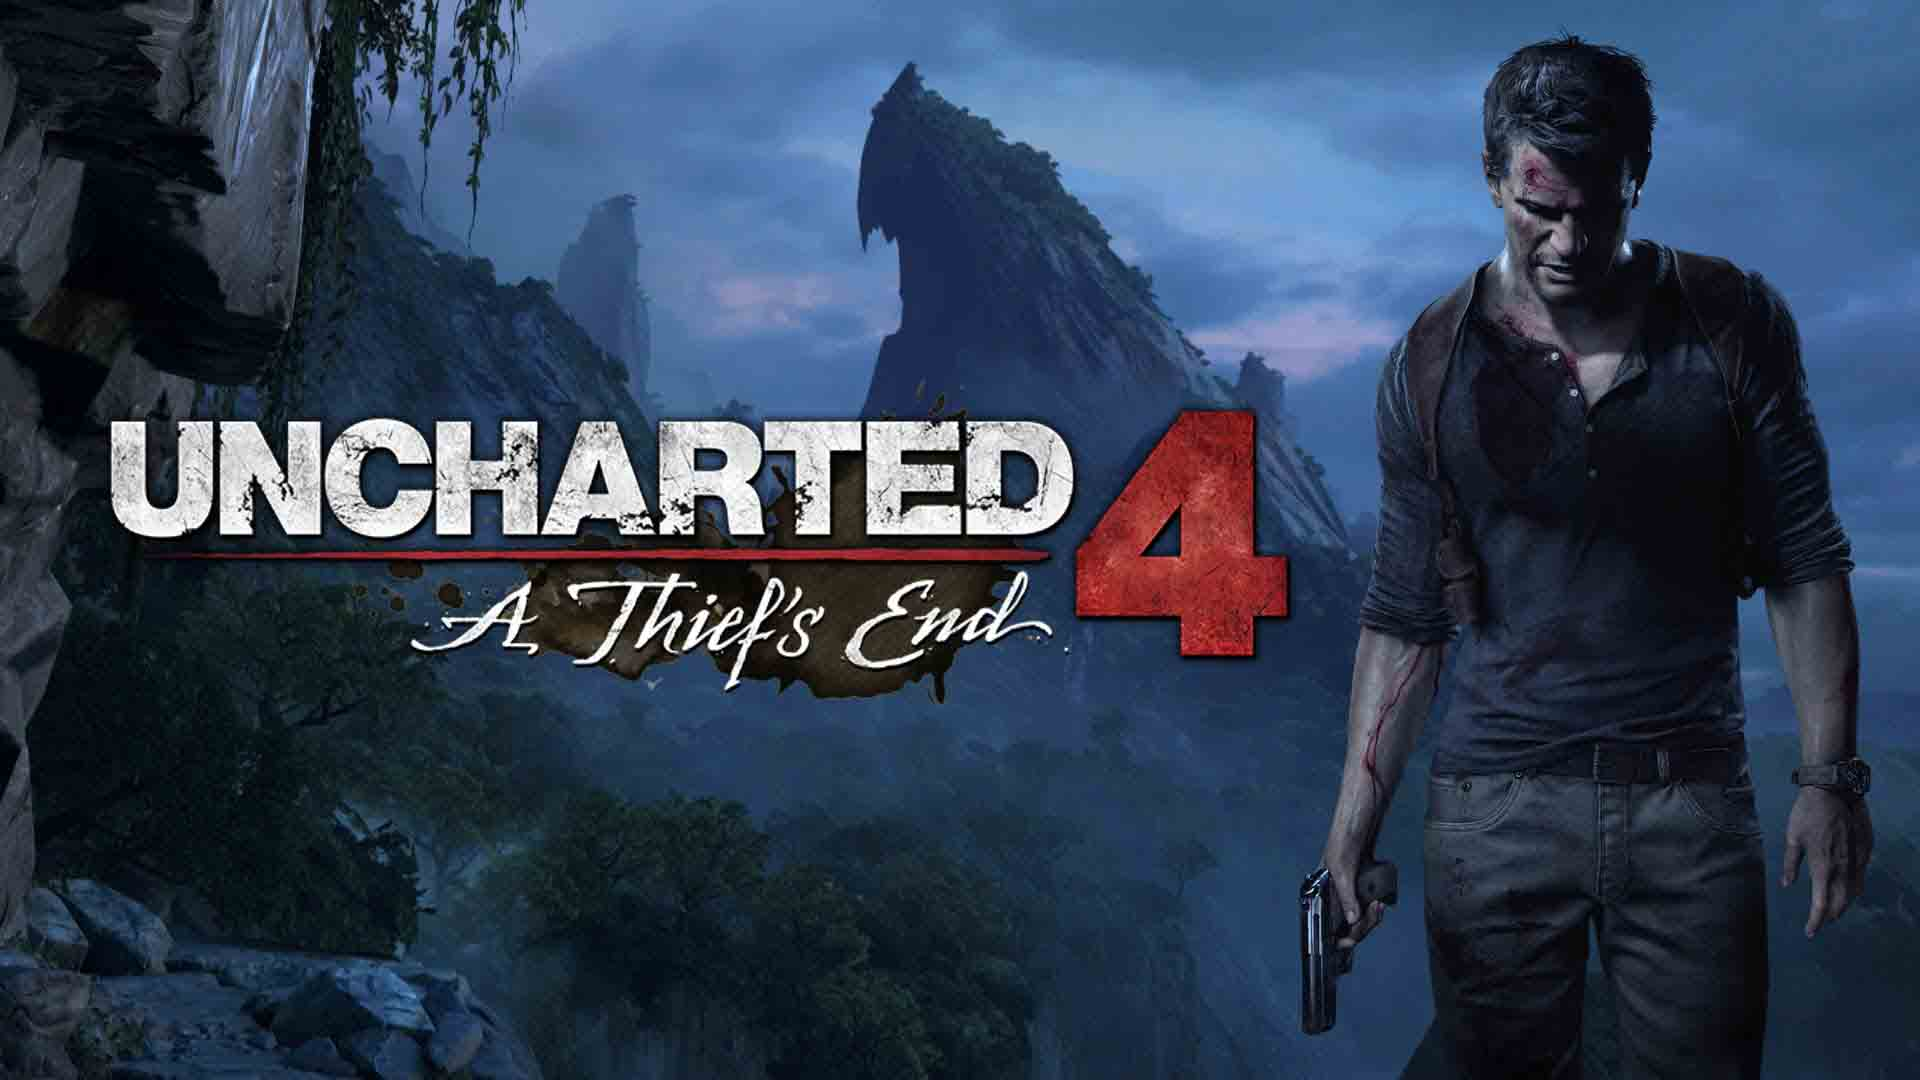 Uncharted 4 A Thief's End.jpg